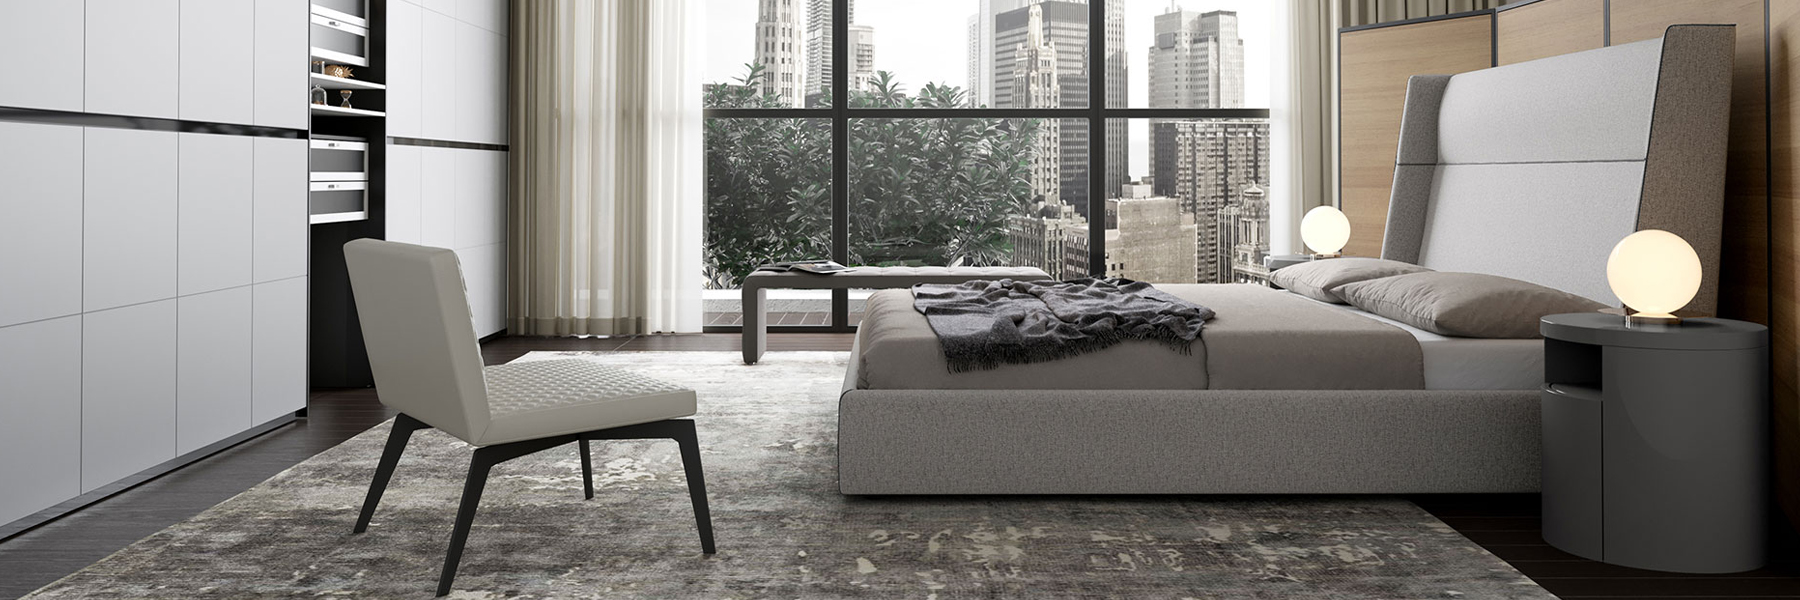 Upscale Contemporary Bedroom Furniture Showroom in Austin, TX